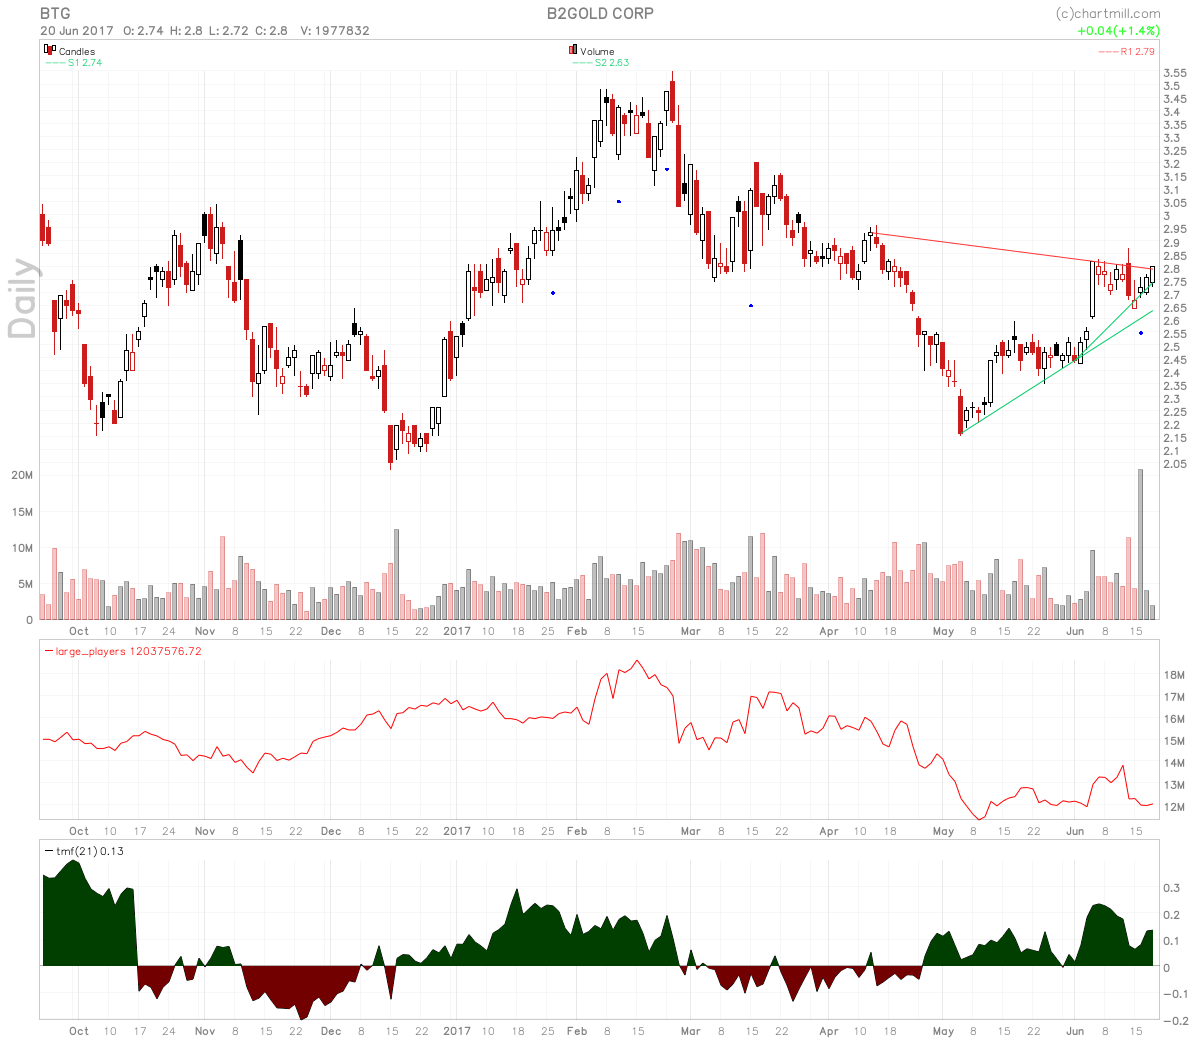 B2Gold Corp Testing Symmetrical Triangle Resistance